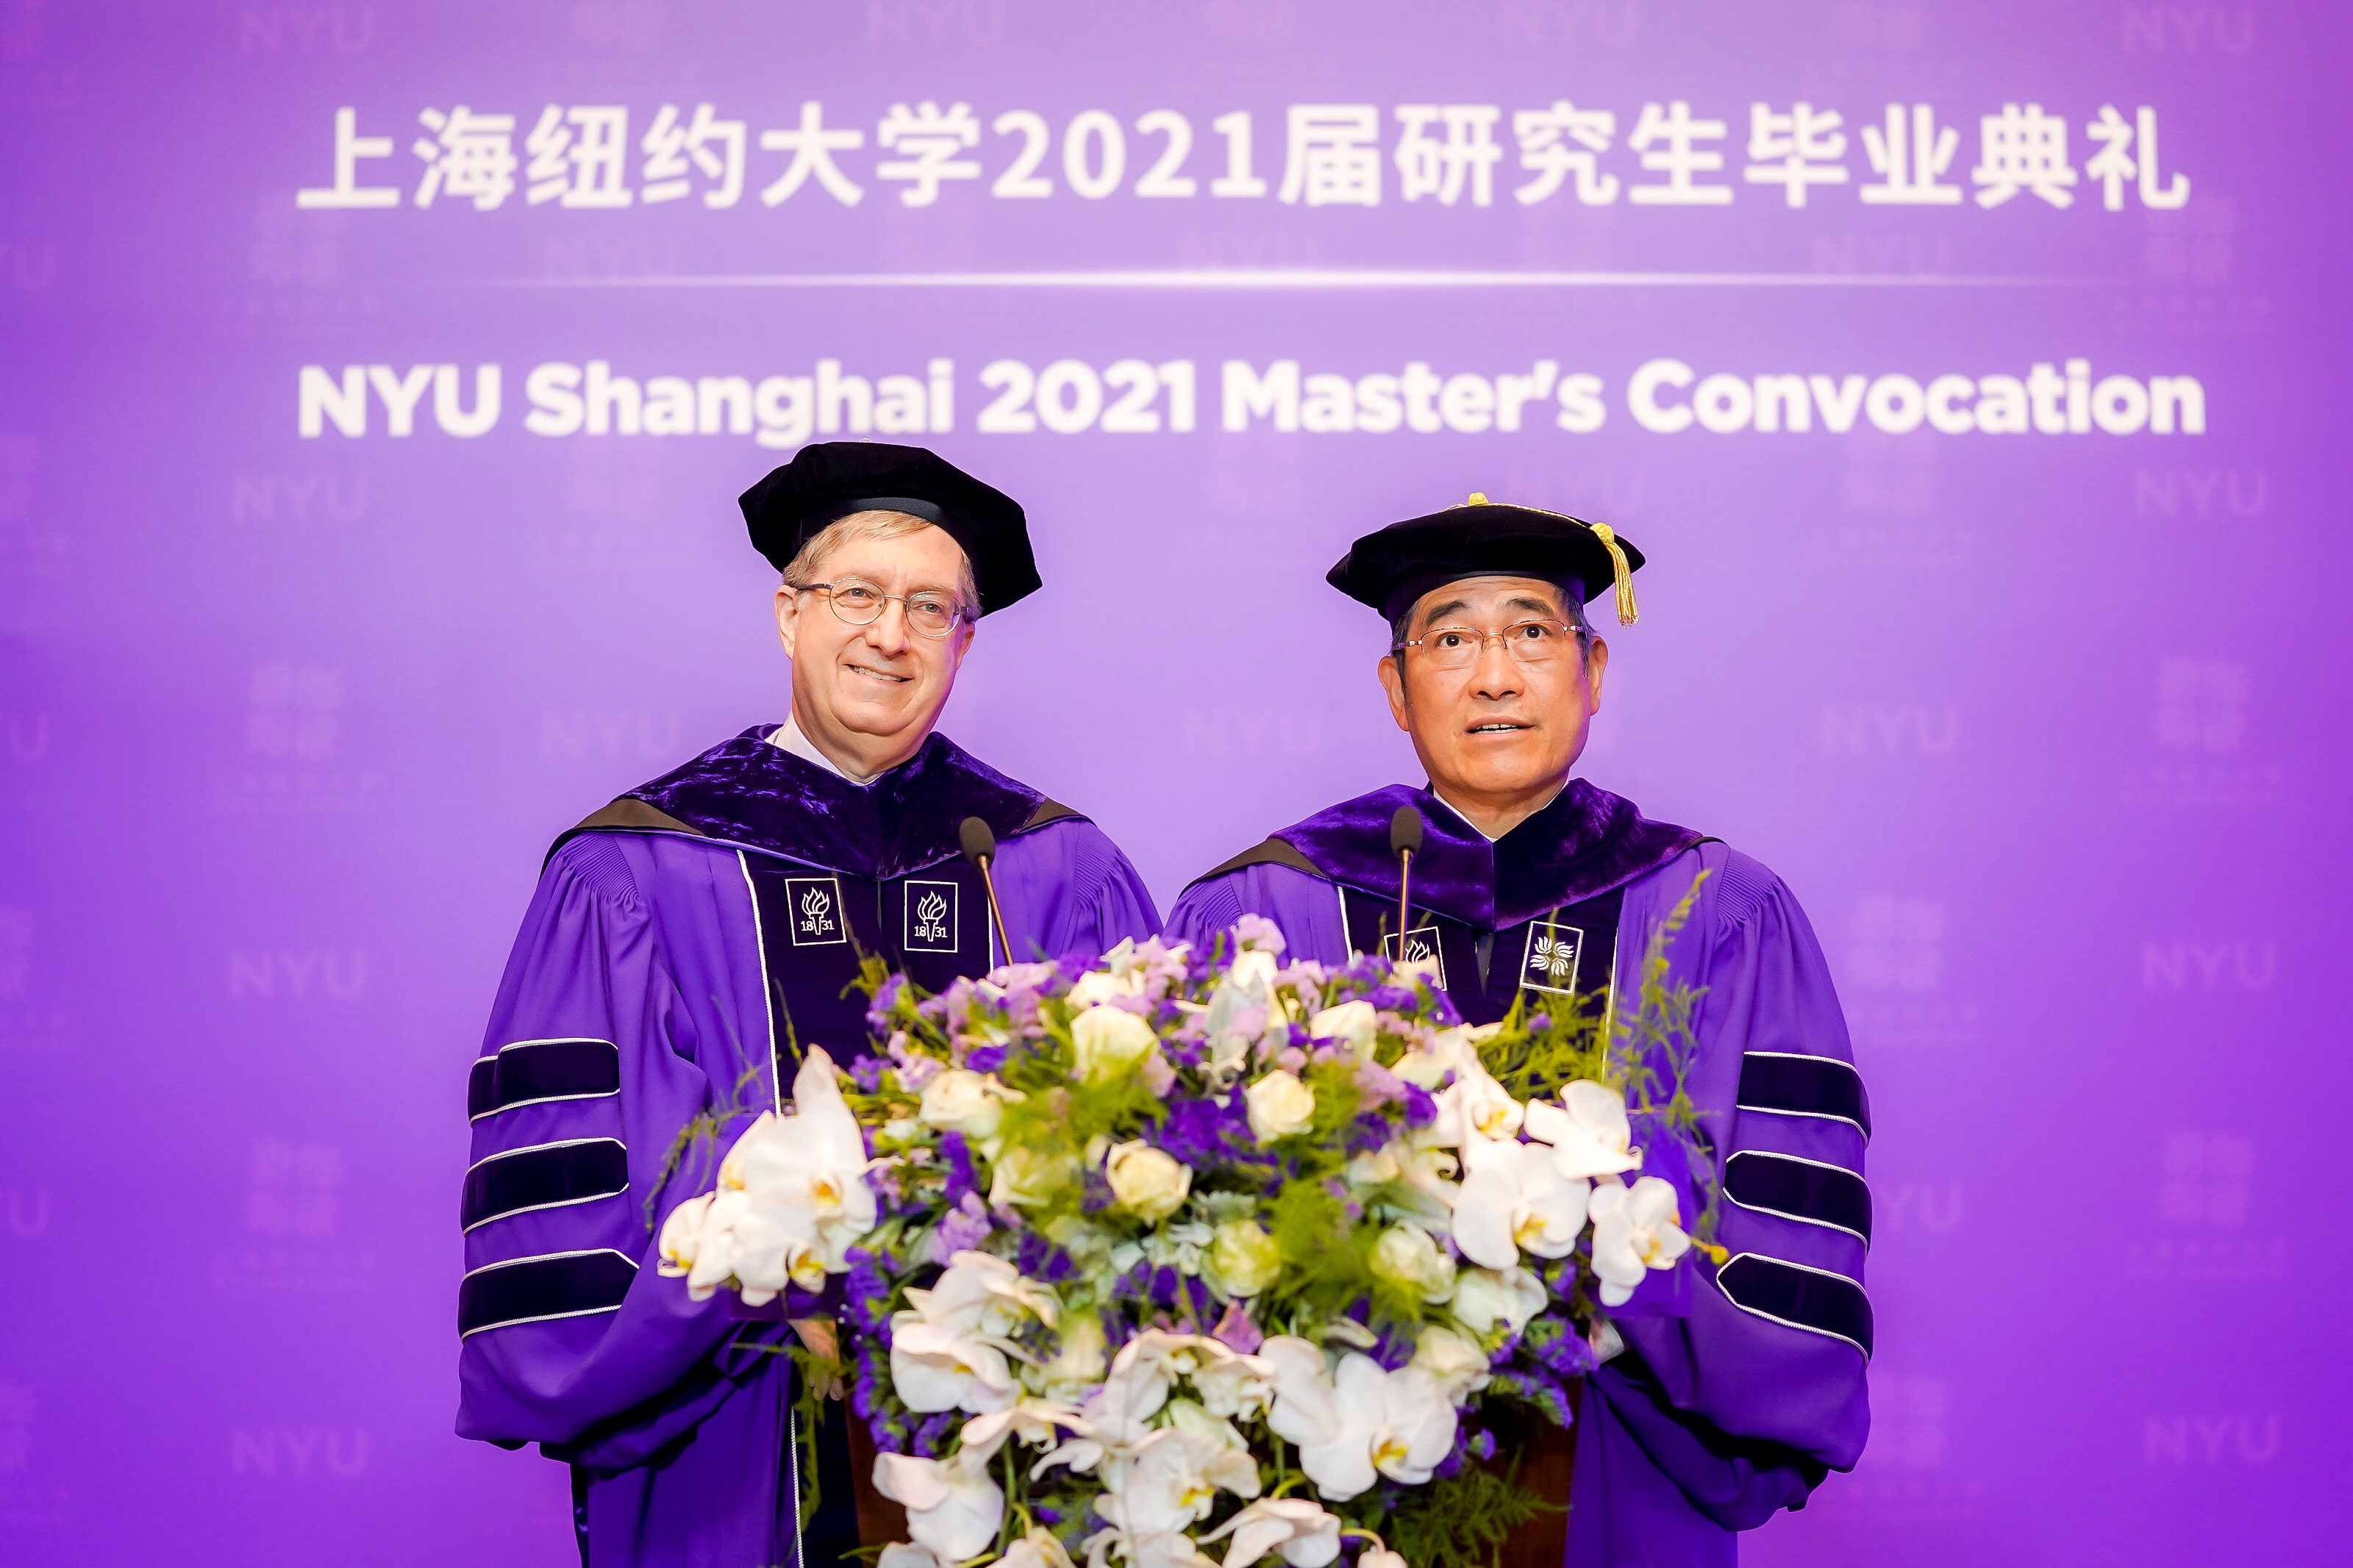 2021 master's convocation 2